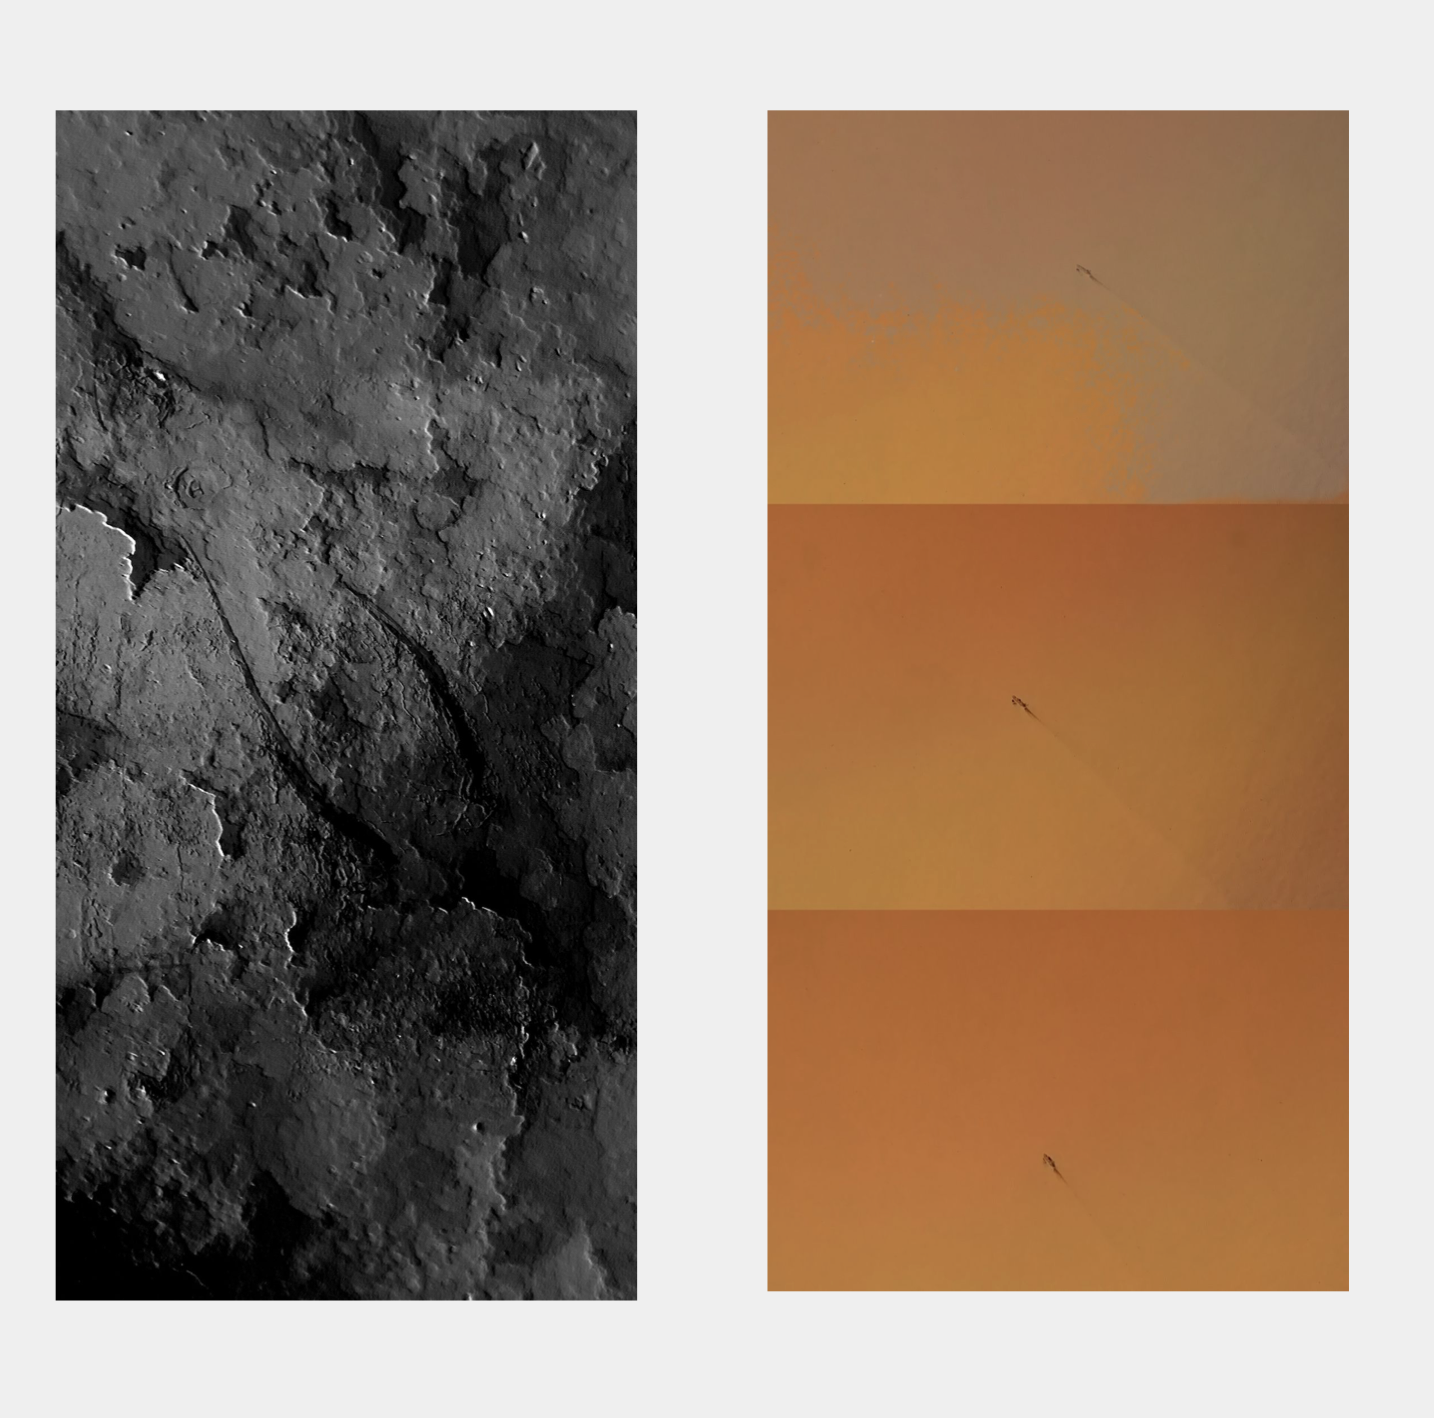 A Wrench Descending (diptych)